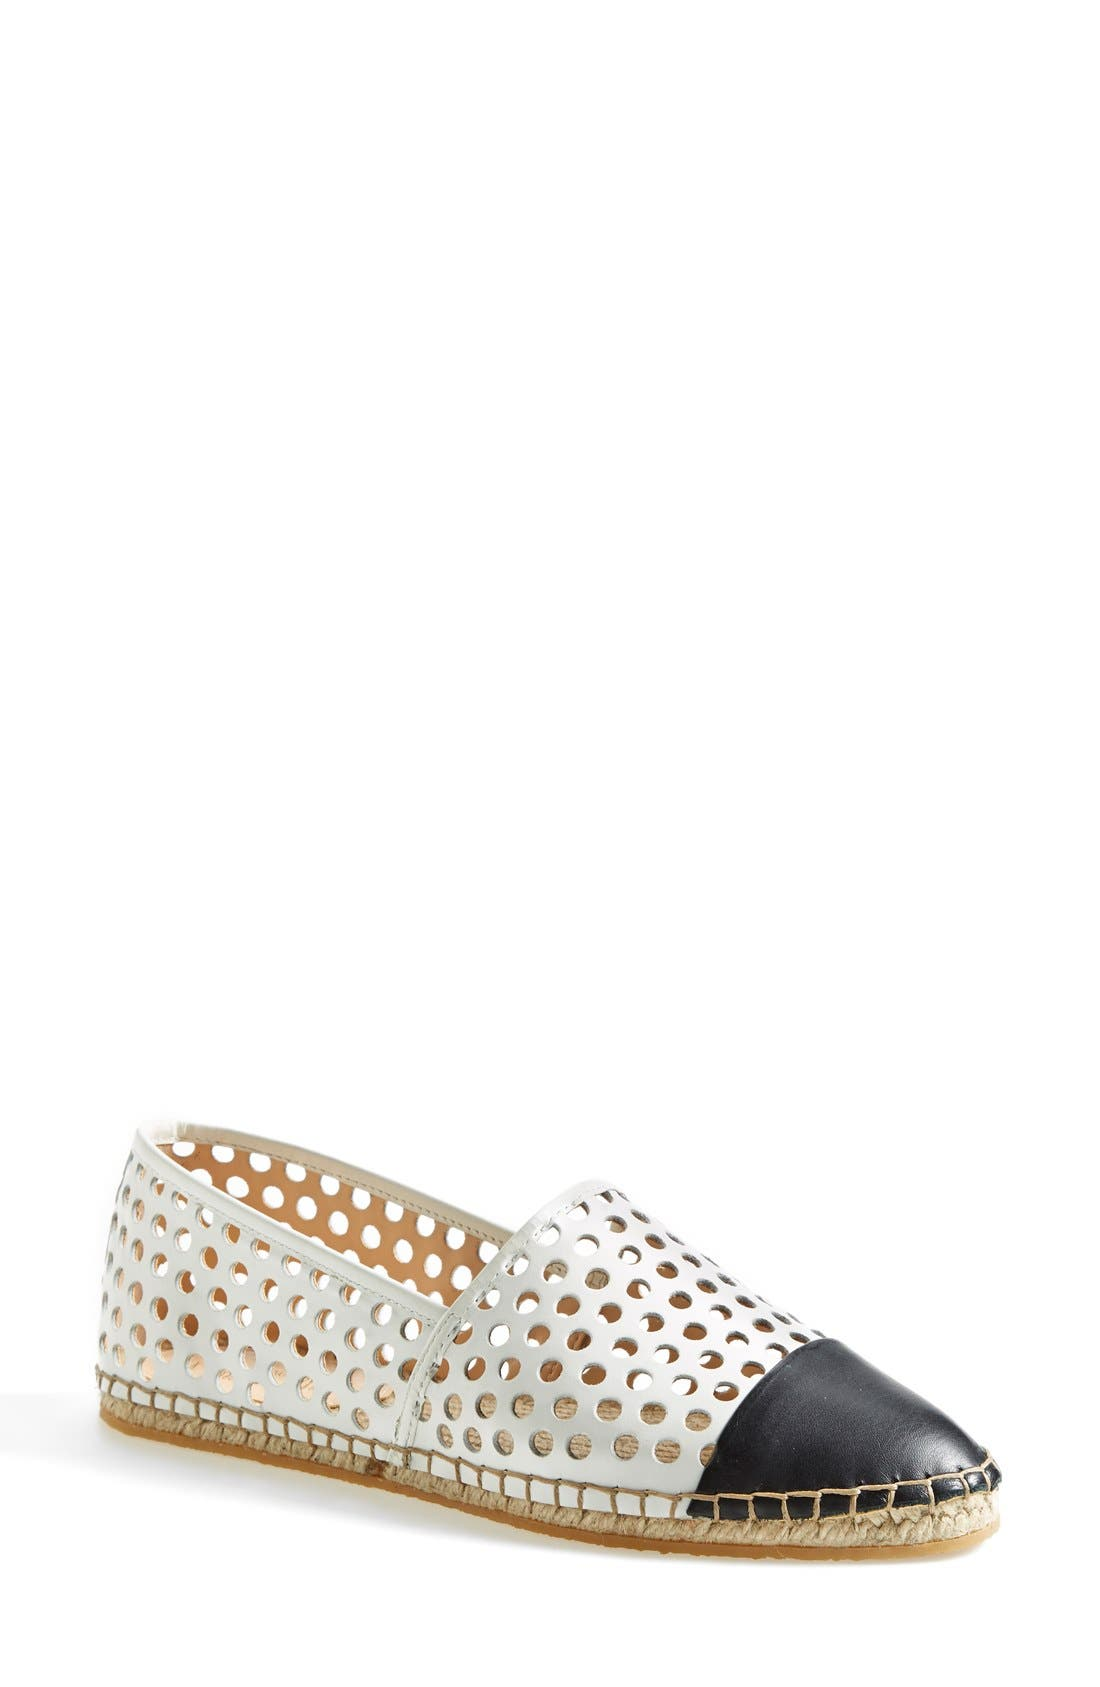 'Mara' Espadrille Flat,                         Main,                         color, White/ Black